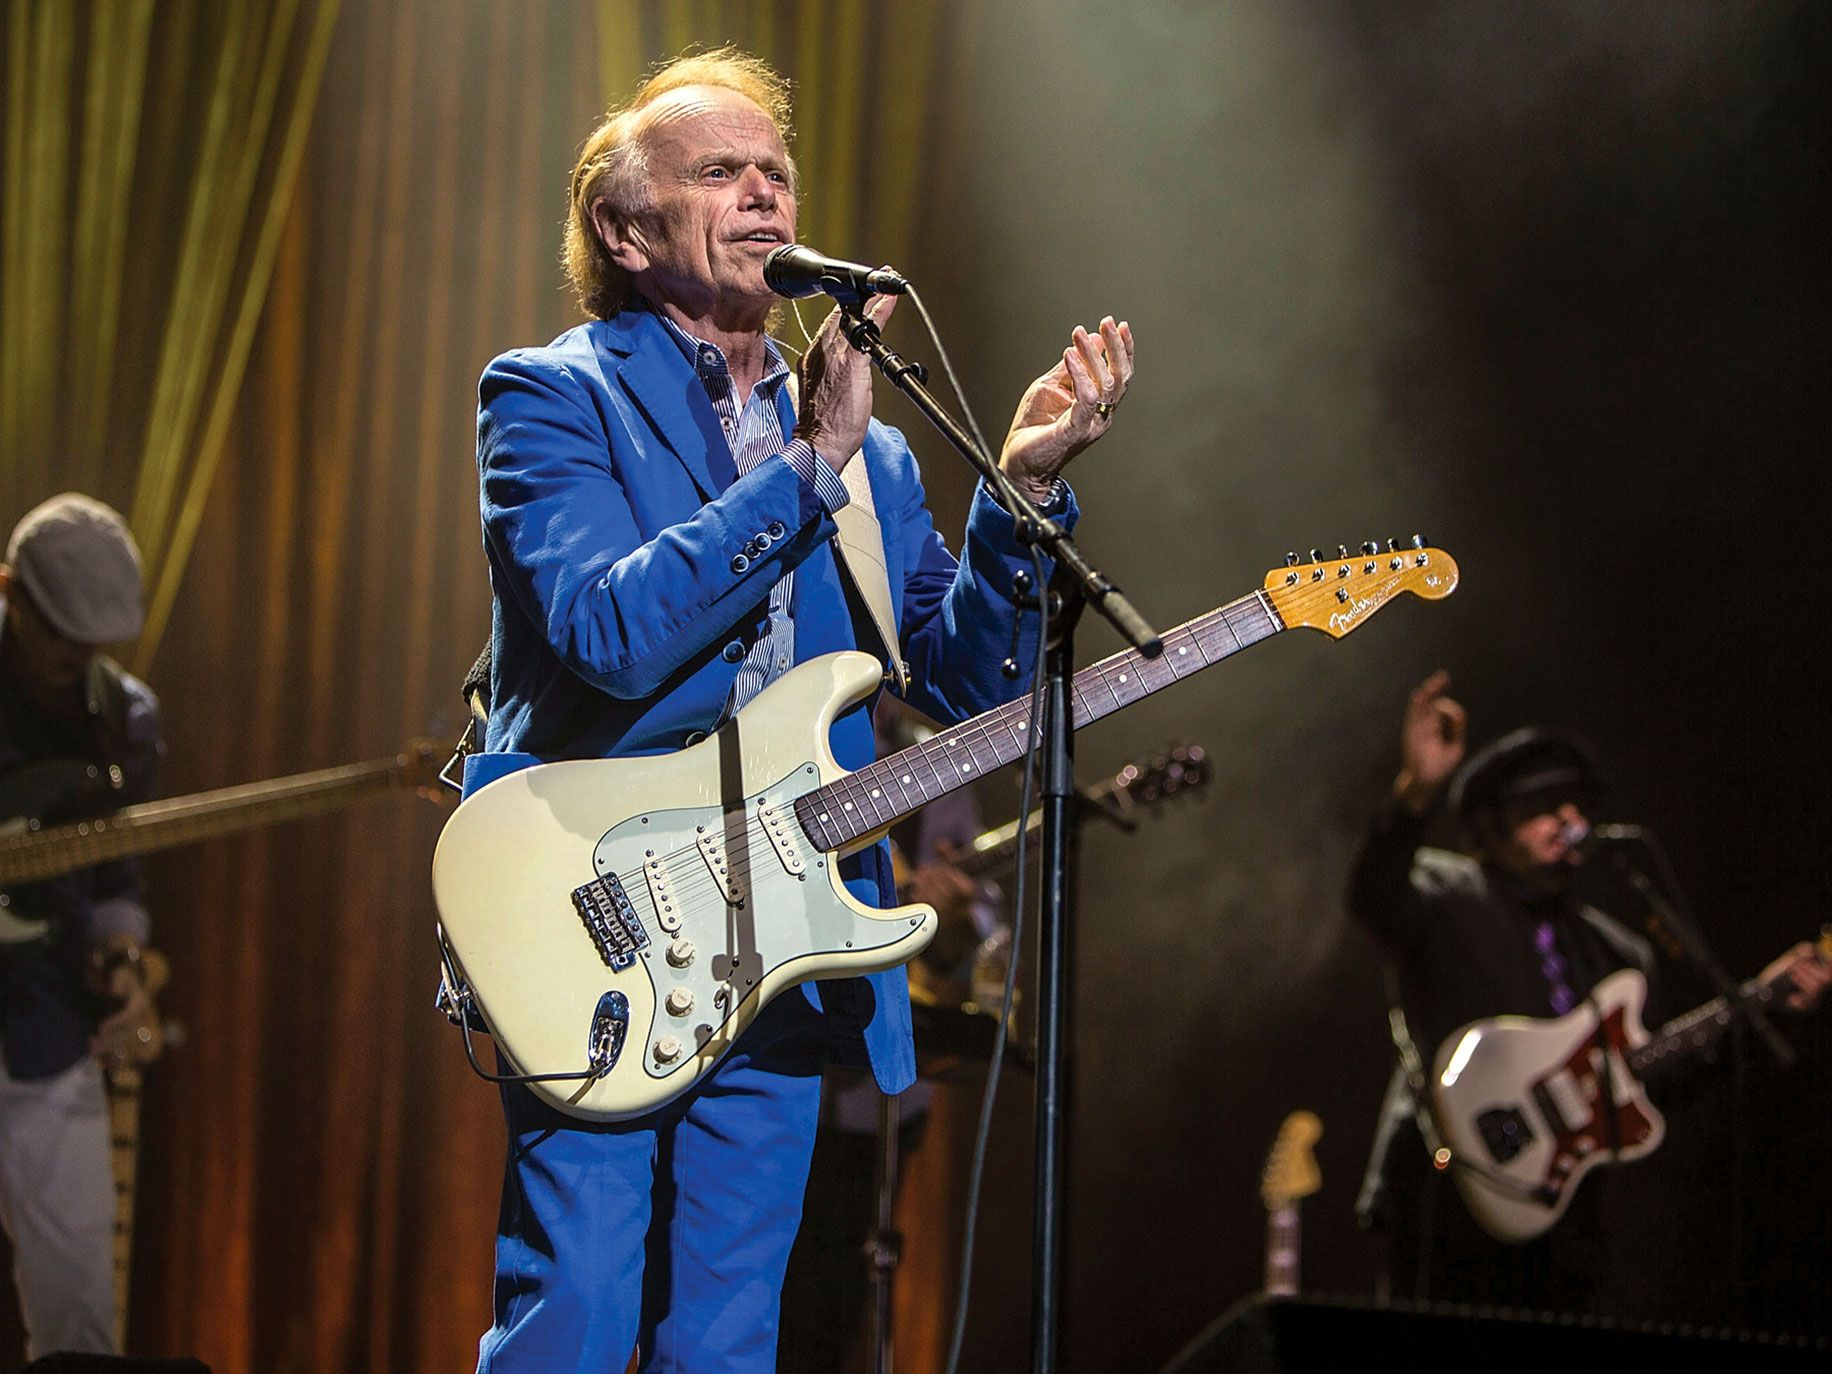 Al Jardine backing up his cousin Brian Wilson at a show in San Diego in May.